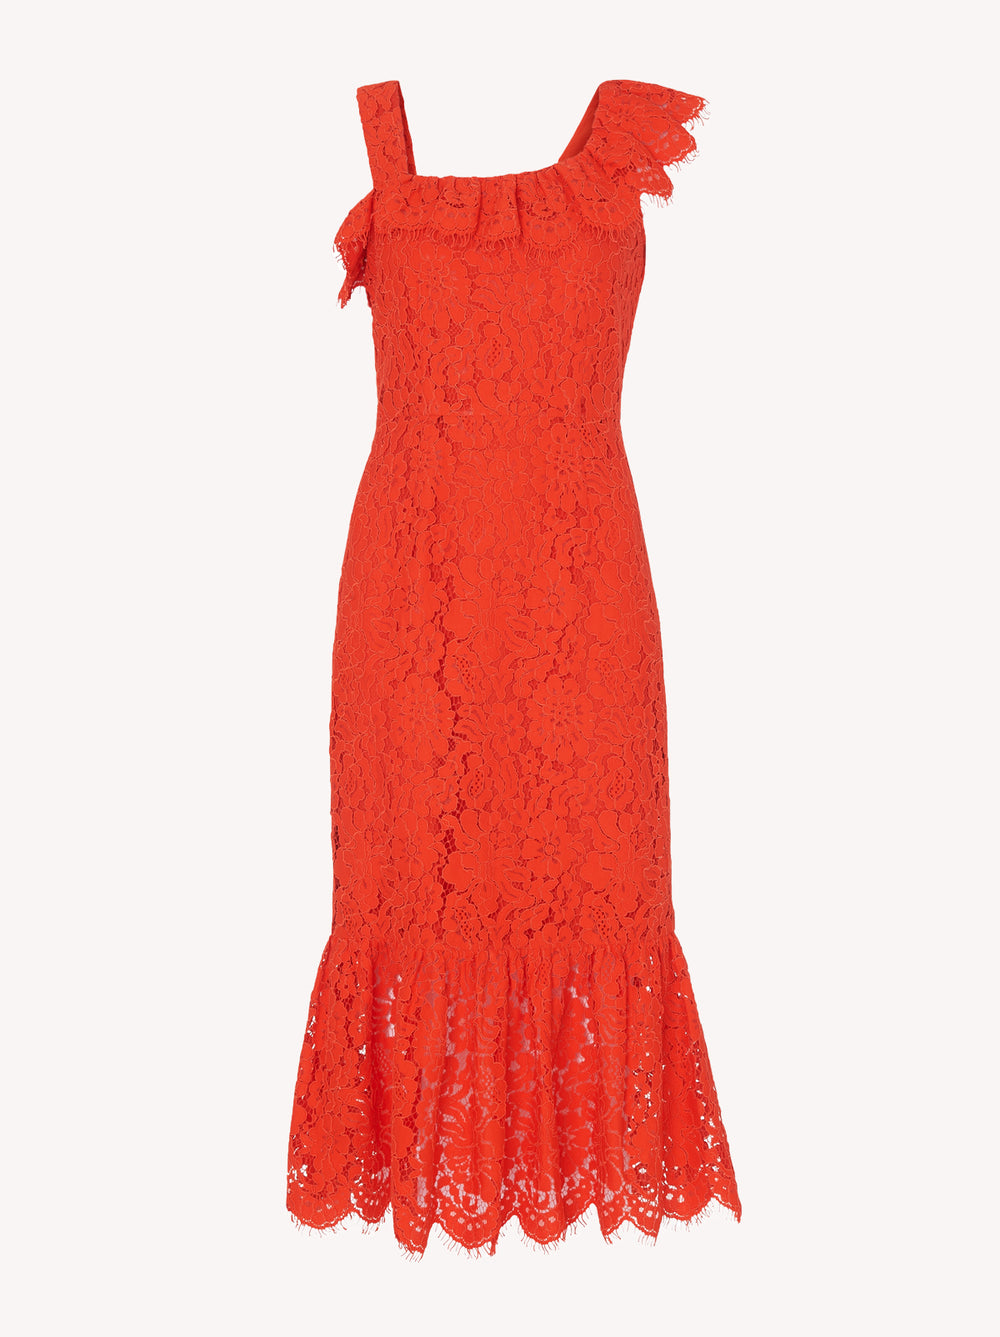 Sabine Orange Lace Frill Hem Dress by KITRI Studio